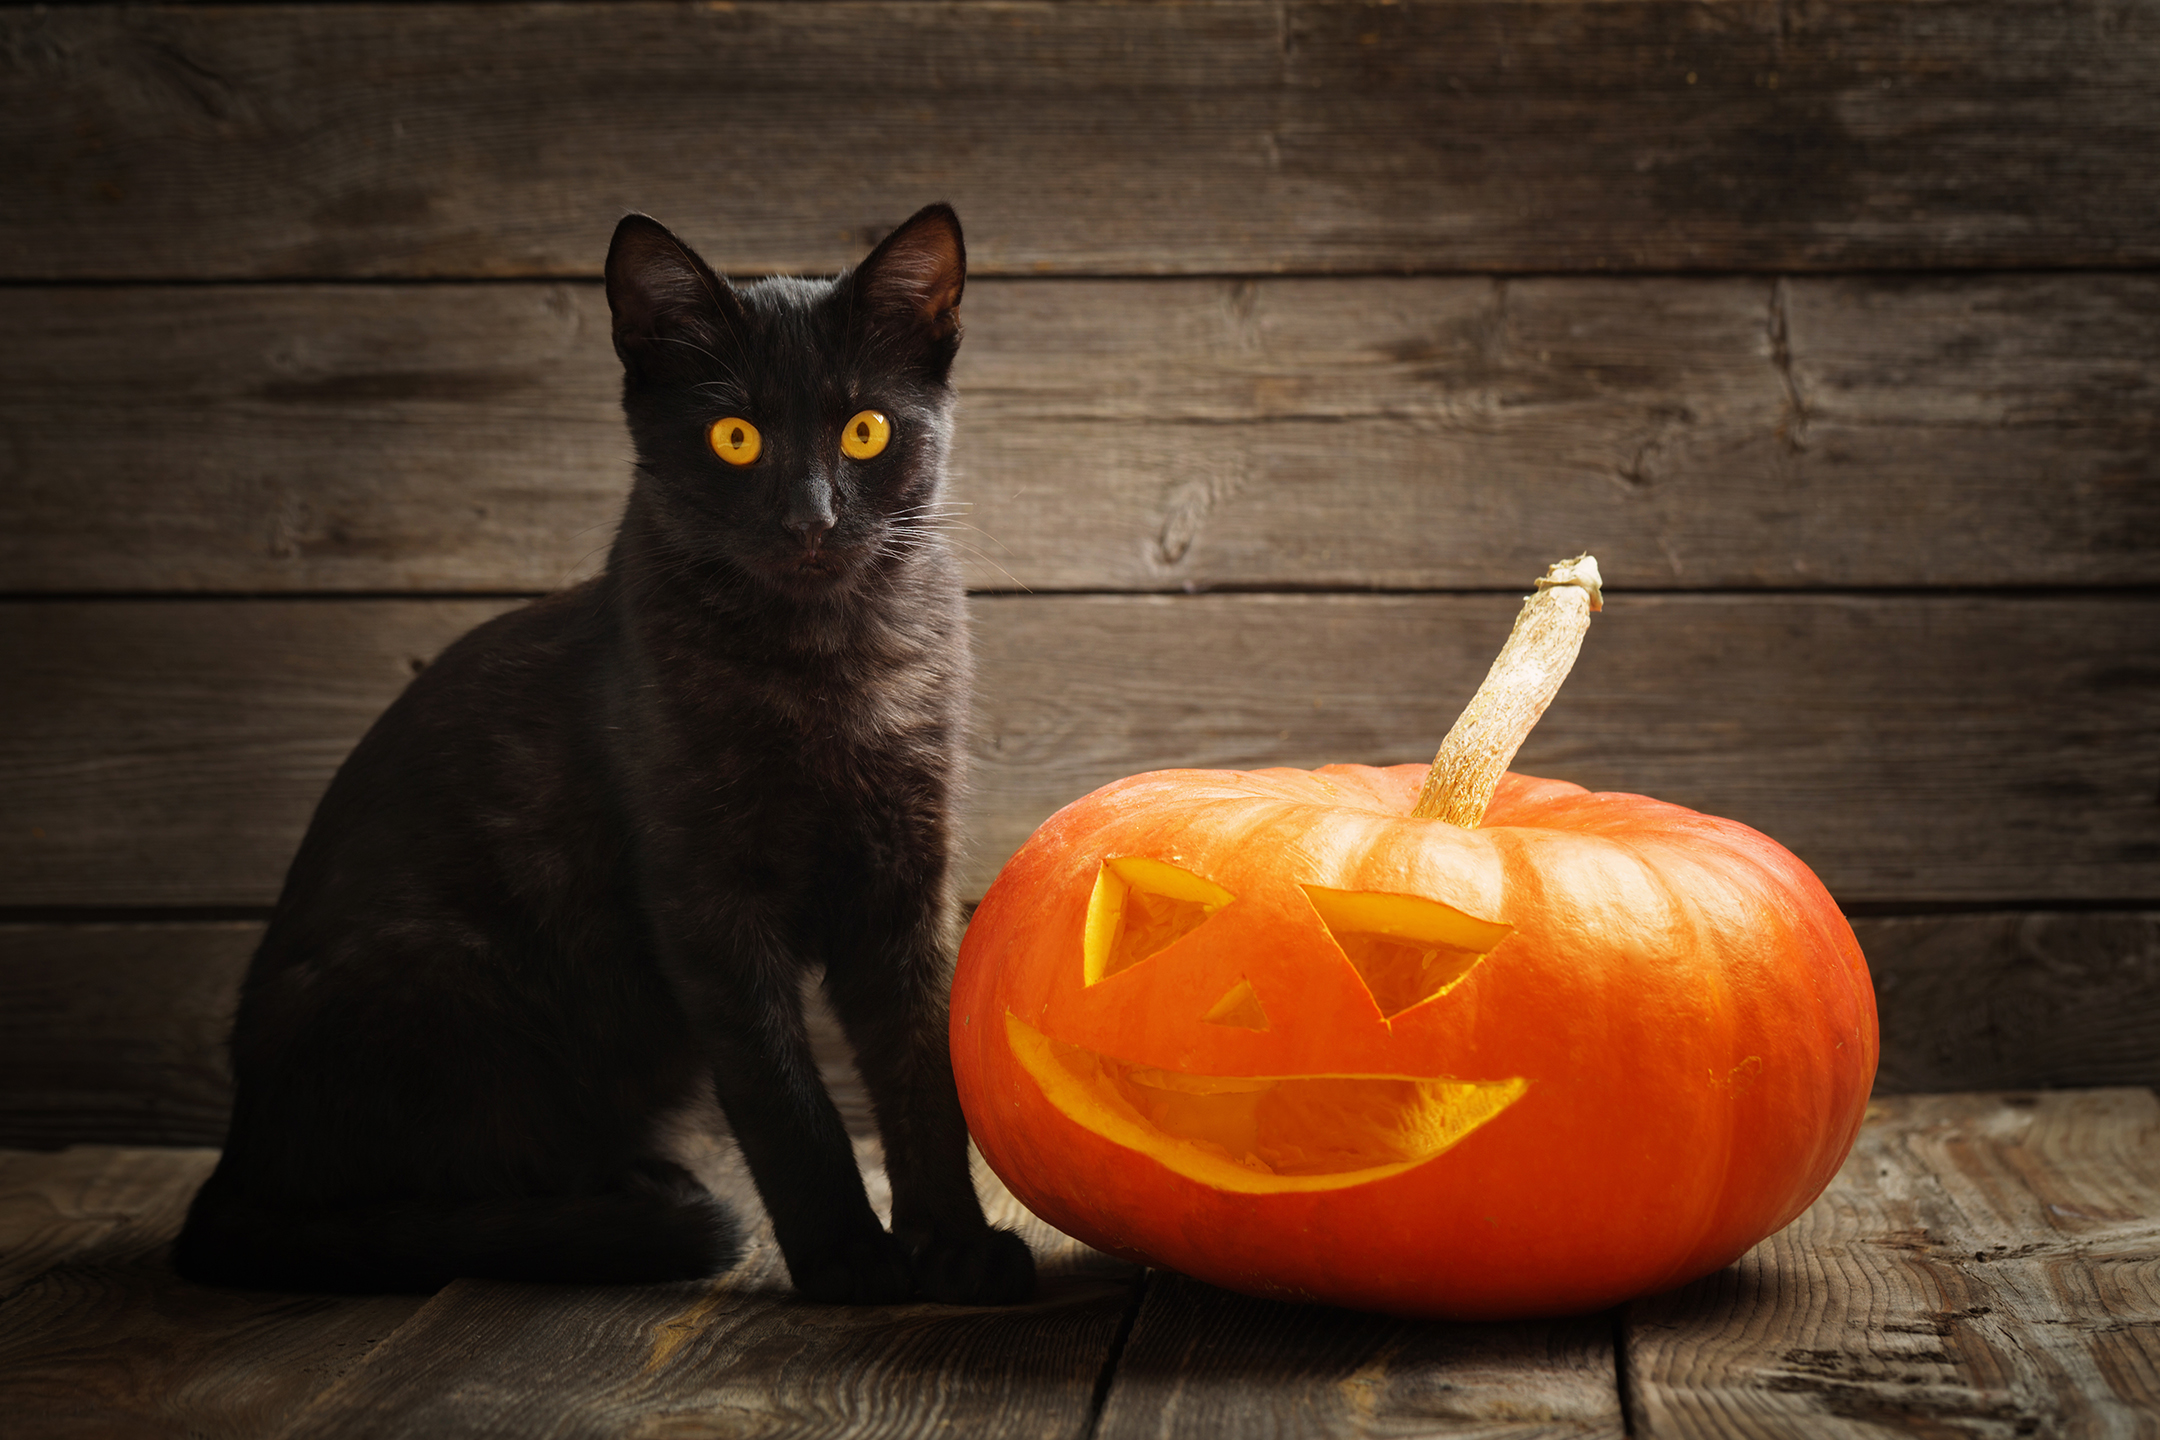 HALLOWEEN IS UPON US, PROTECTING THE BLACK CAT - LOVE FERPLAST